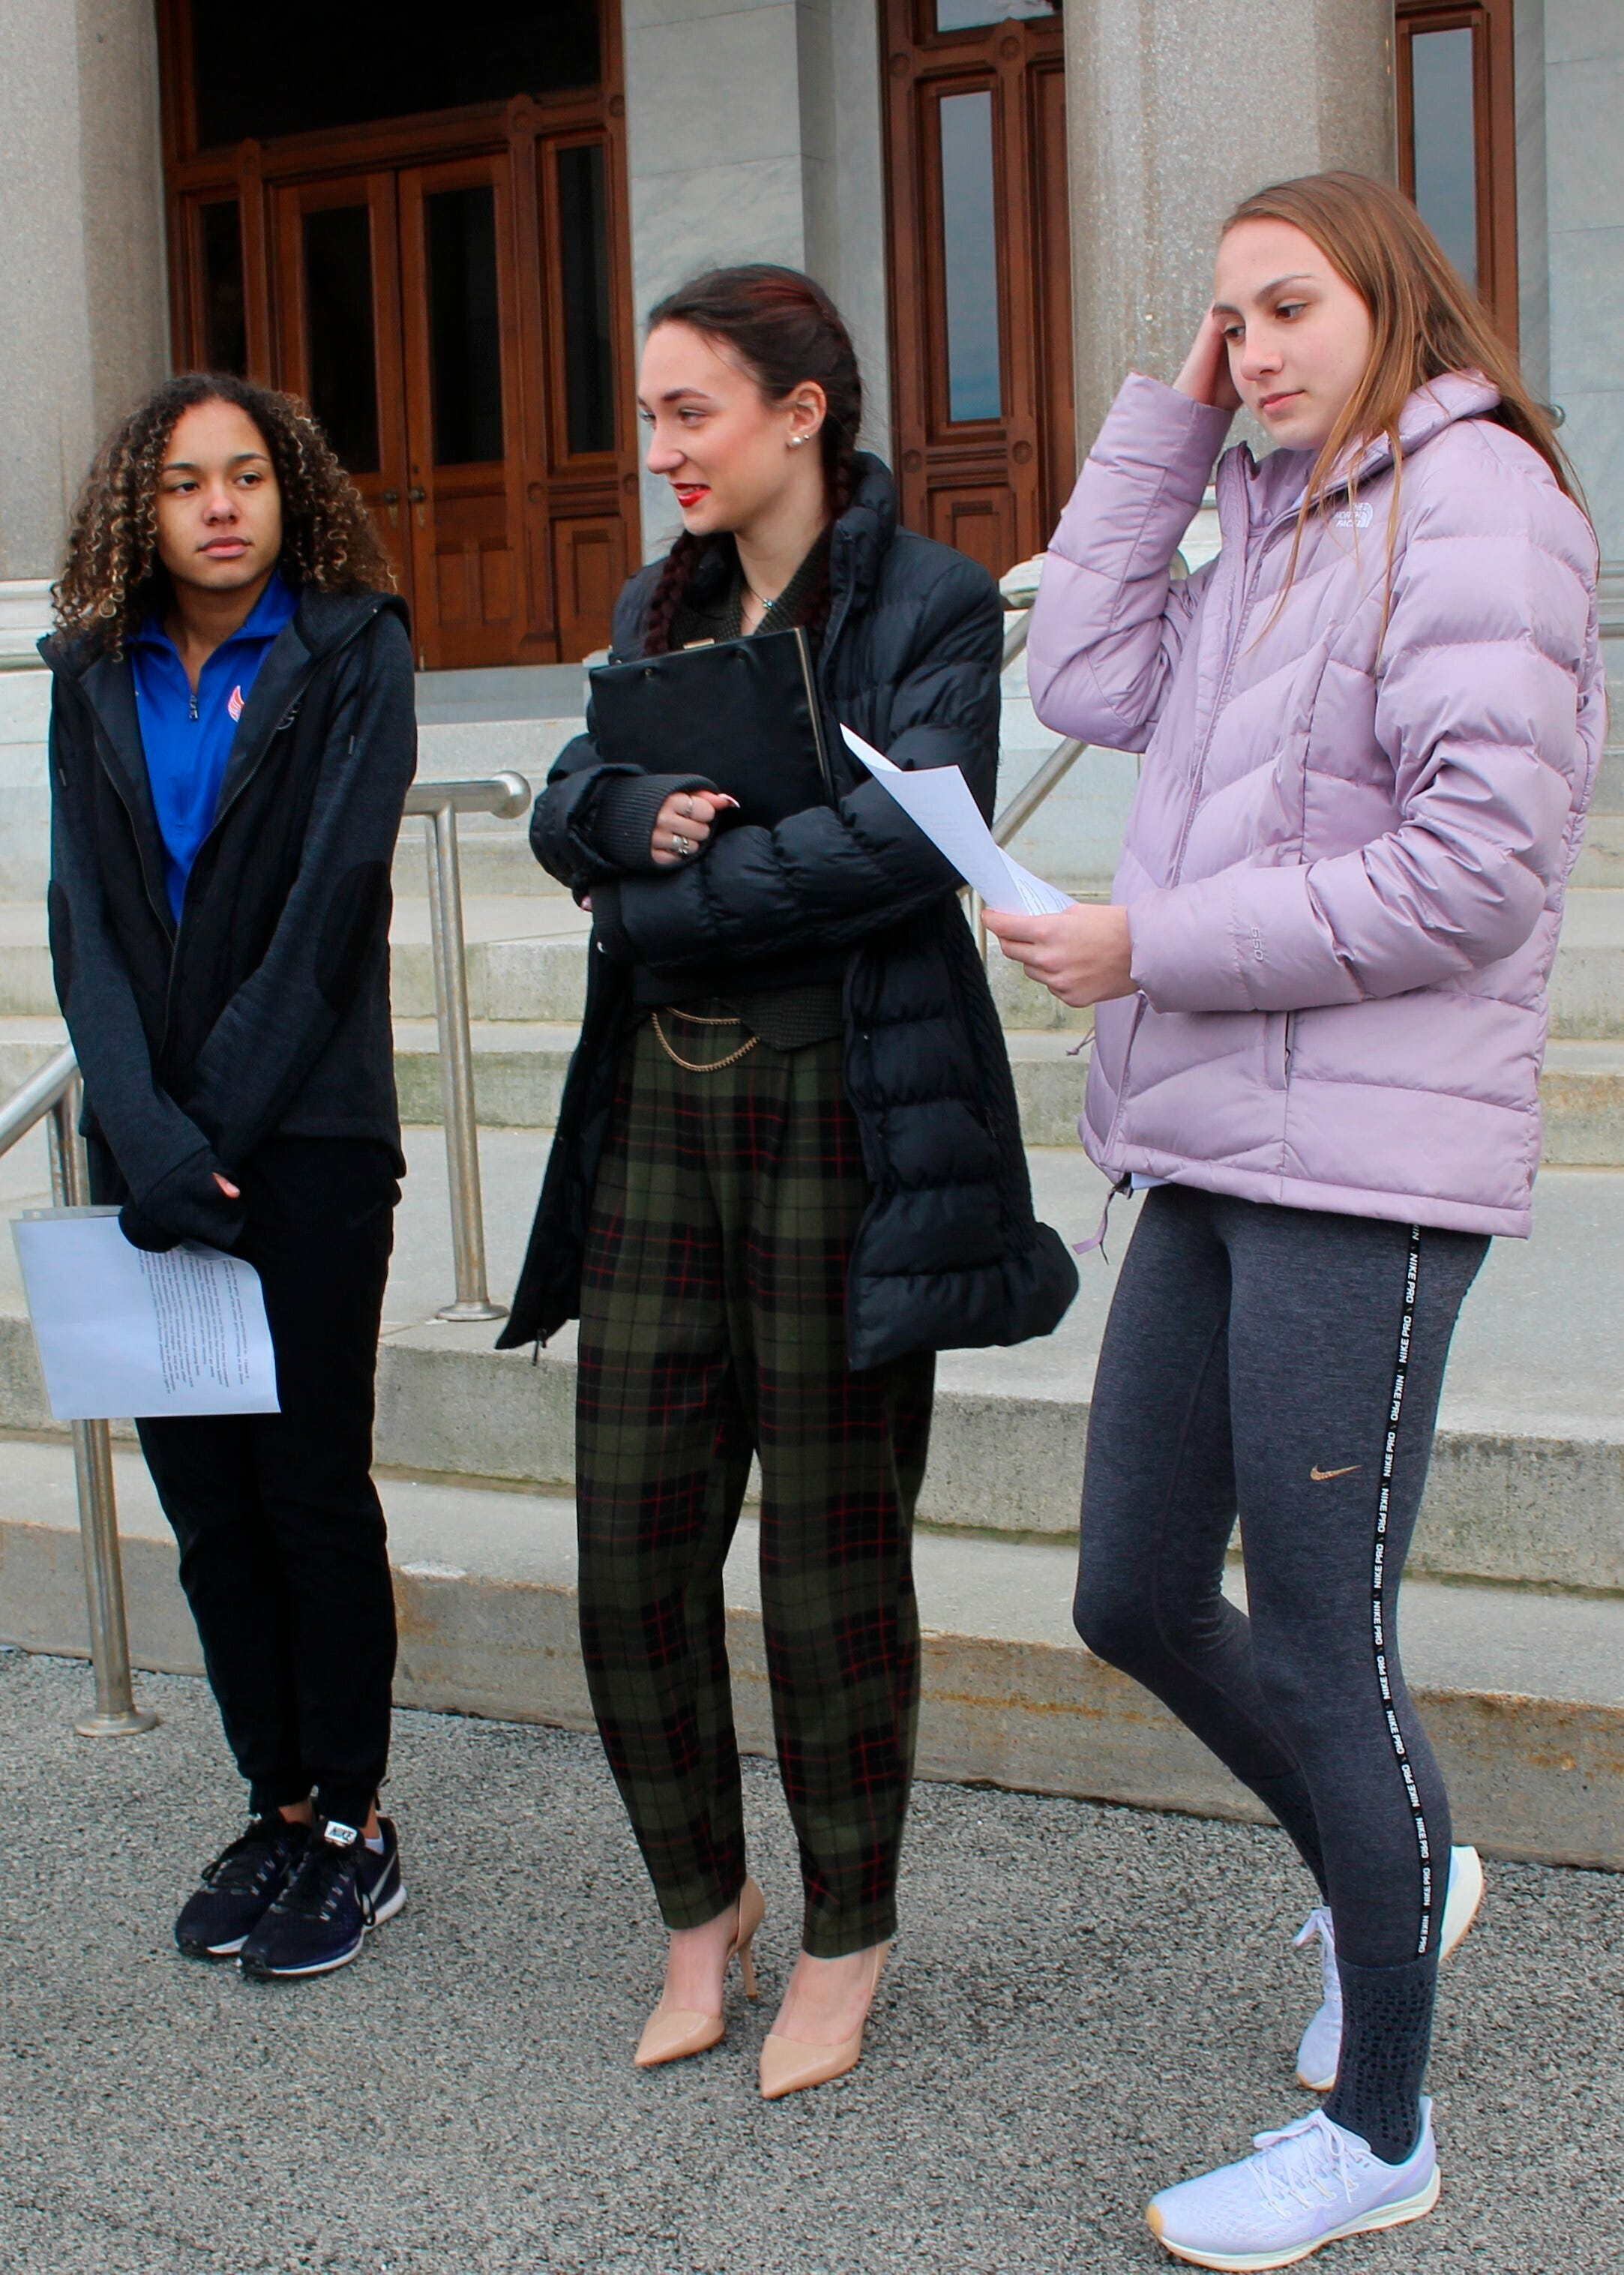 High school track athletes Alanna Smith, left, Selina Soule, center, and Chelsea Mitchell were the original plaintiffs in a lawsuit the Alliance Defending Freedom filed in February 2020. They sought to block a state policy that allows transgender athletes to compete in girls sports.